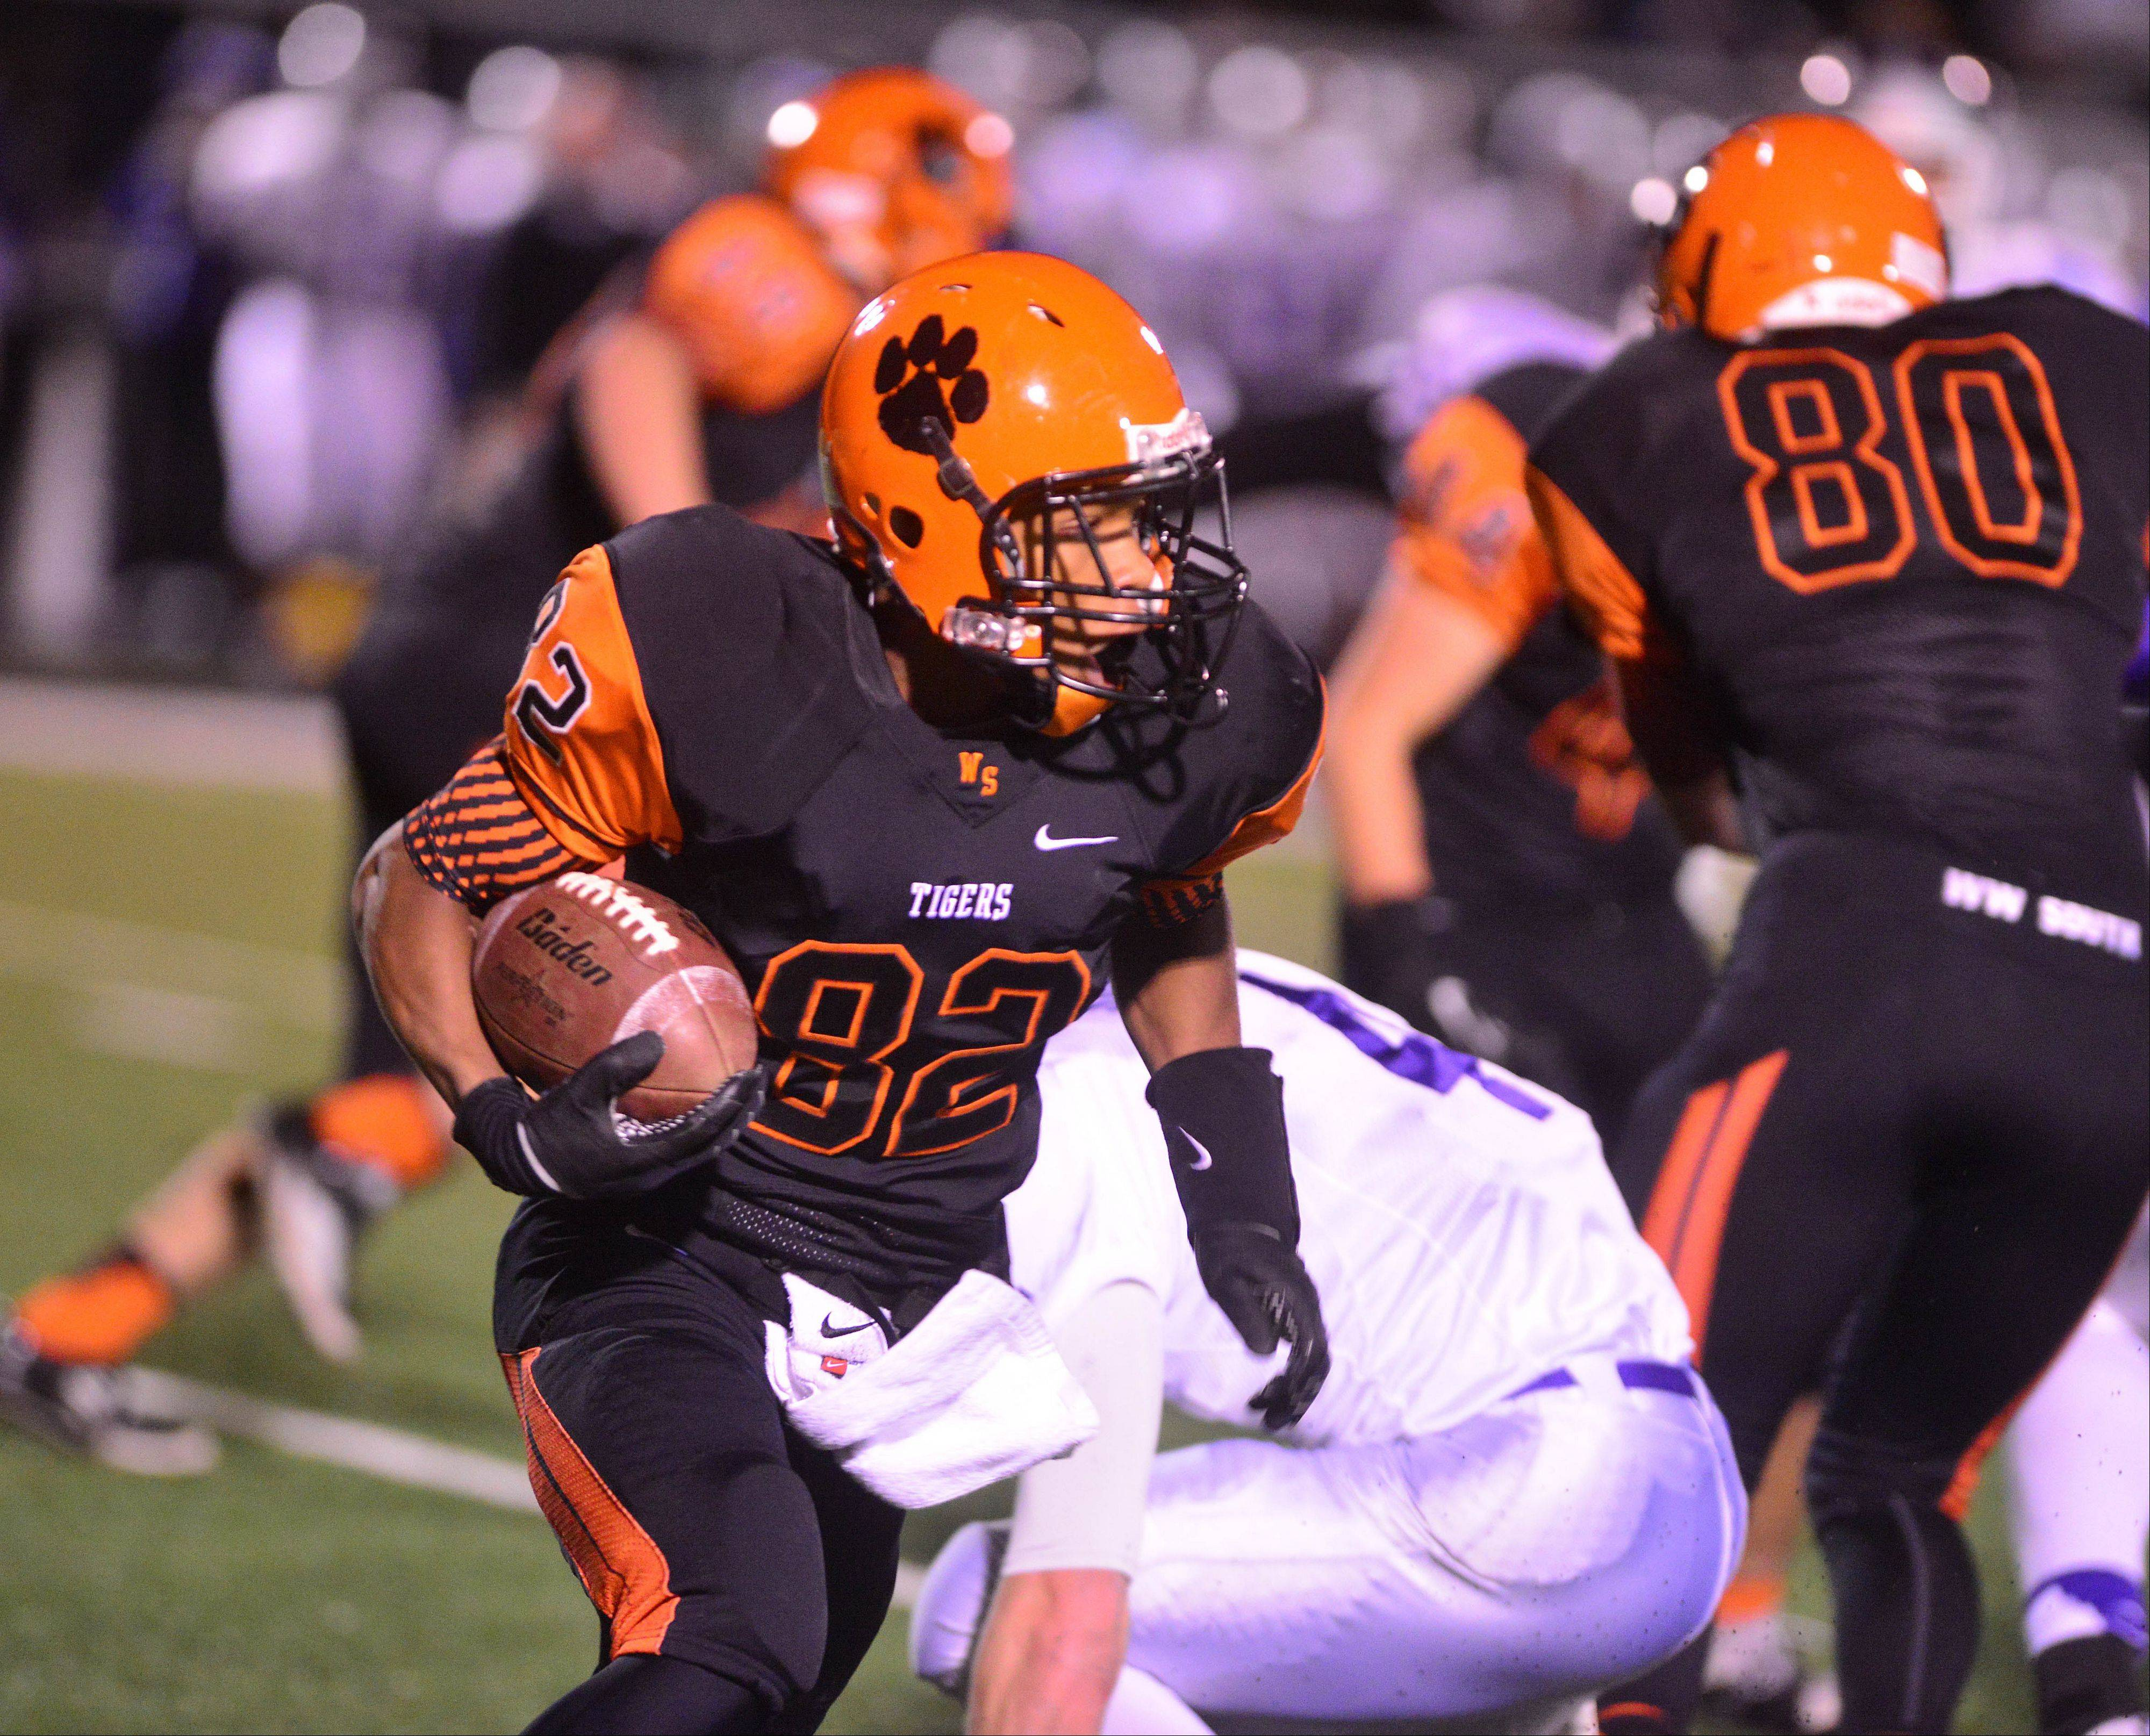 Images: Wheaton Warrenville South vs. Downers Grove North Playoff Football